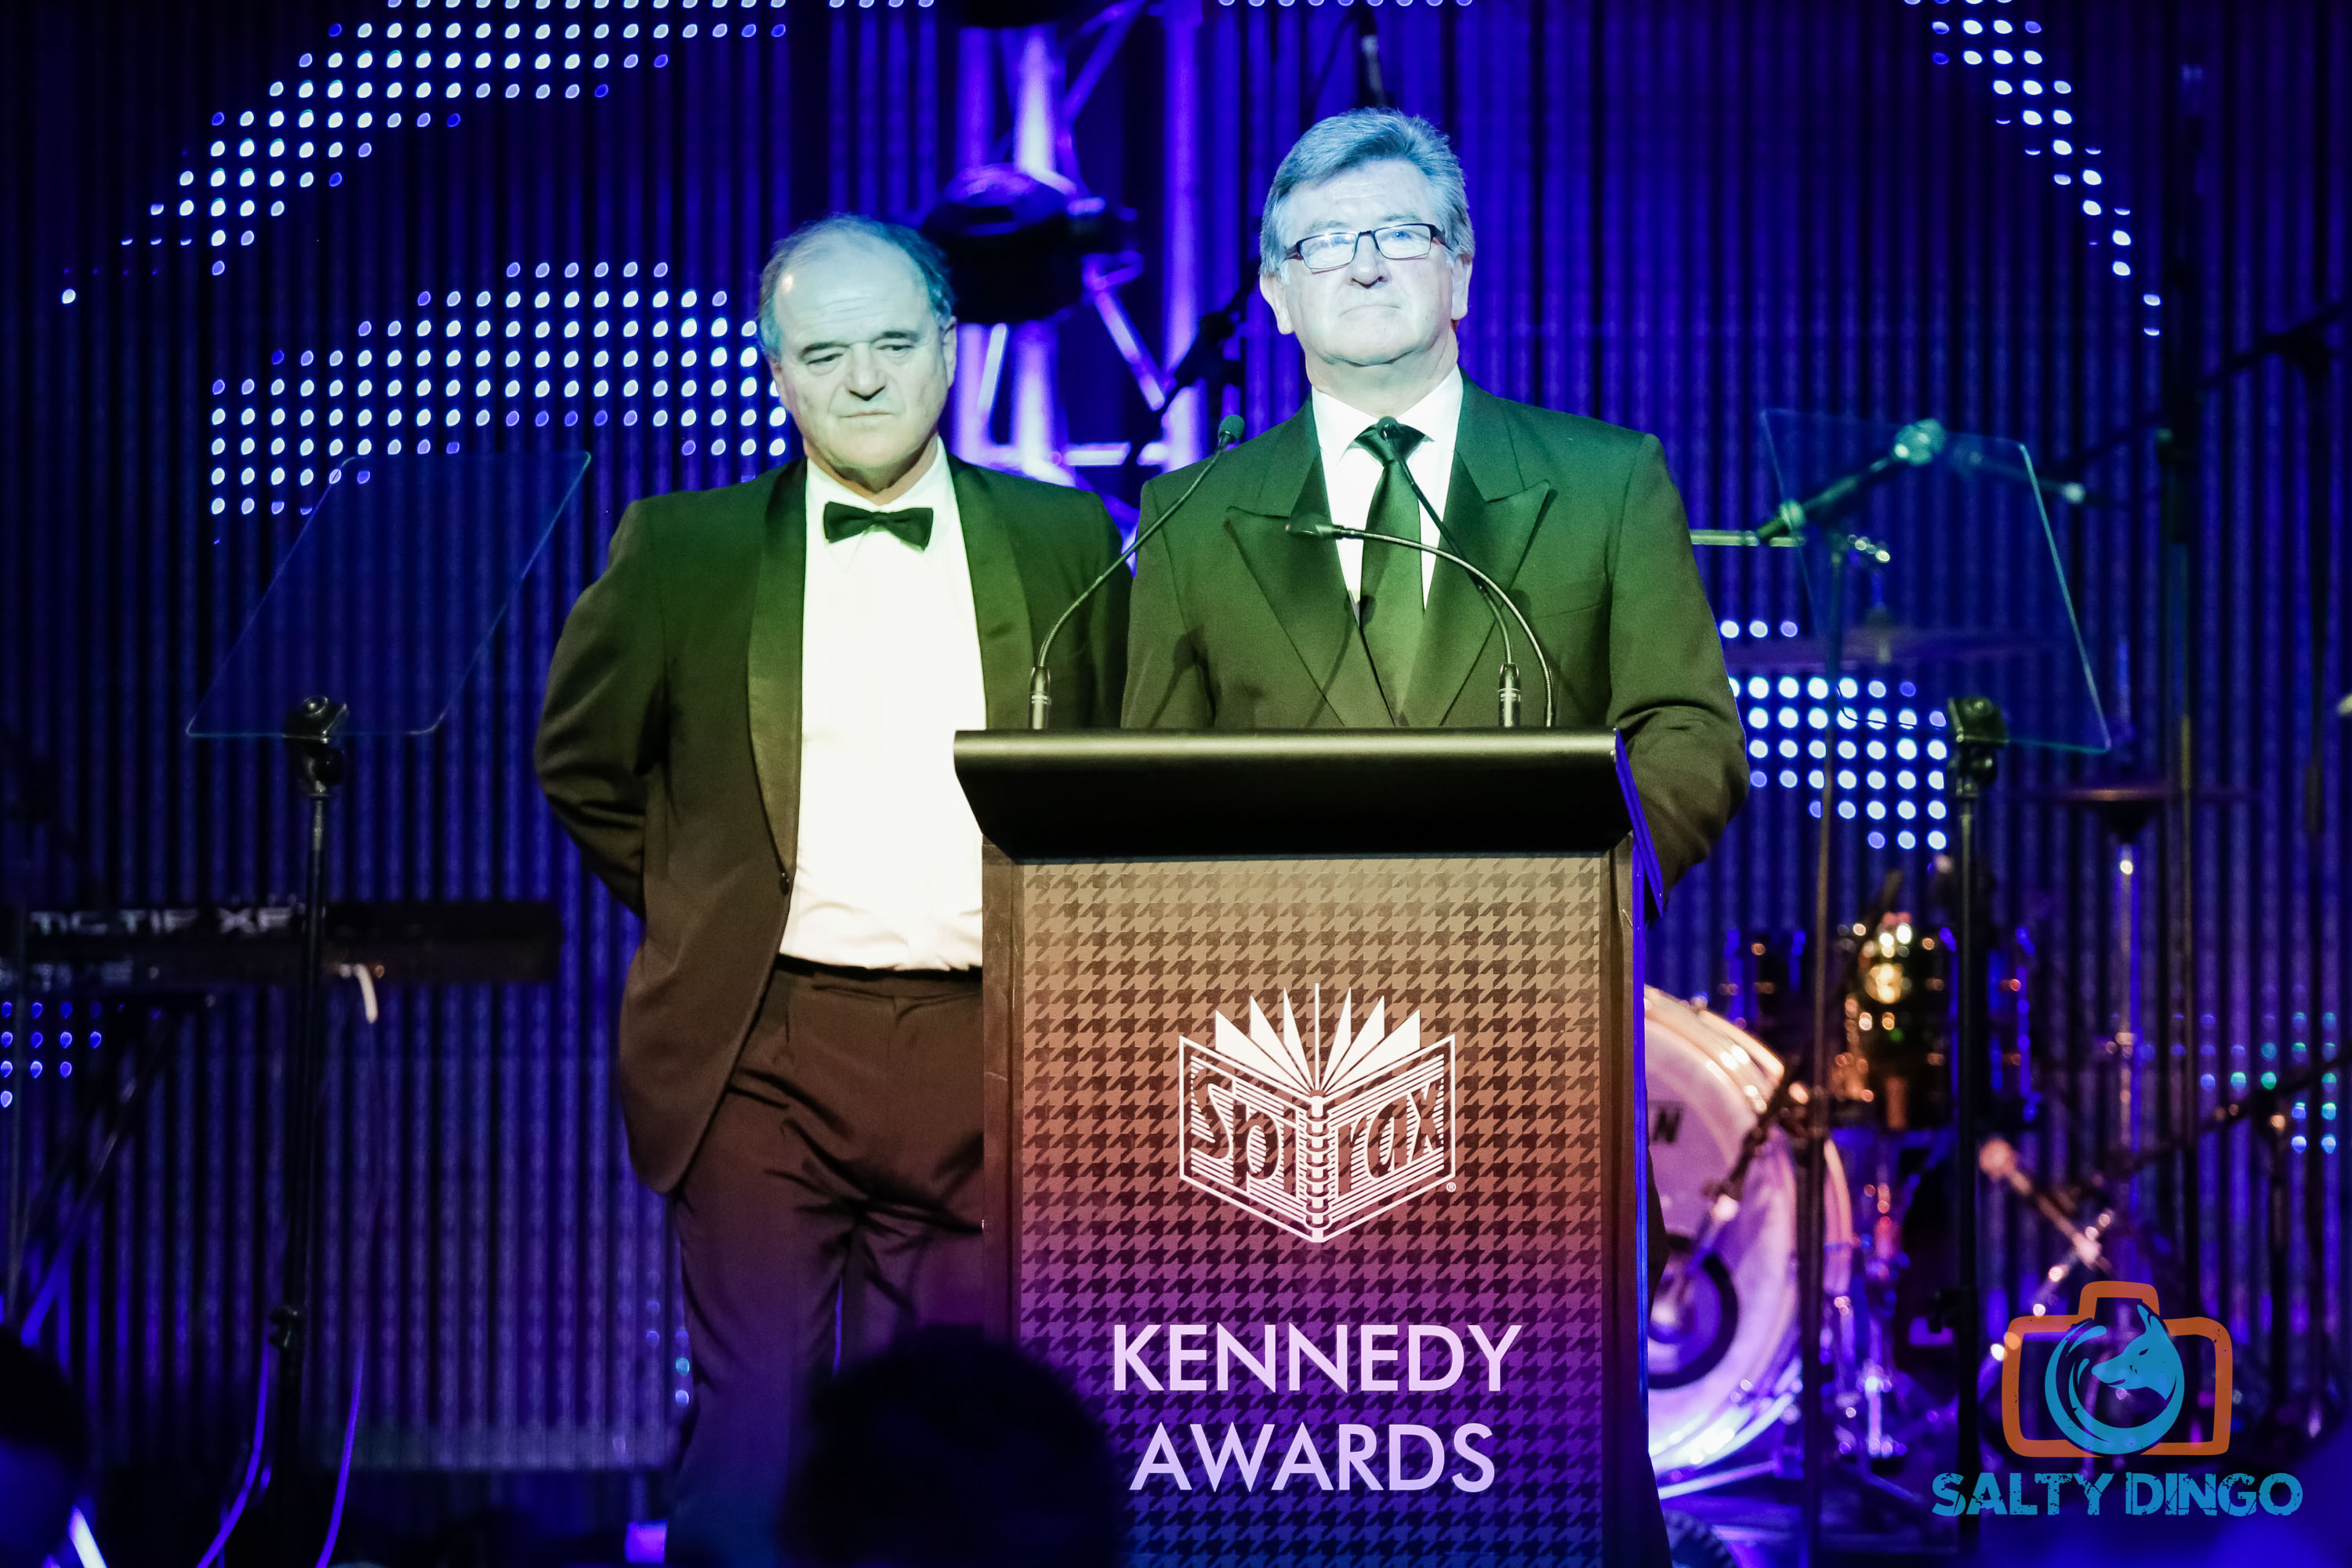 2016 NRMA Kennedy Awards. Picture © Salty Dingo 2016